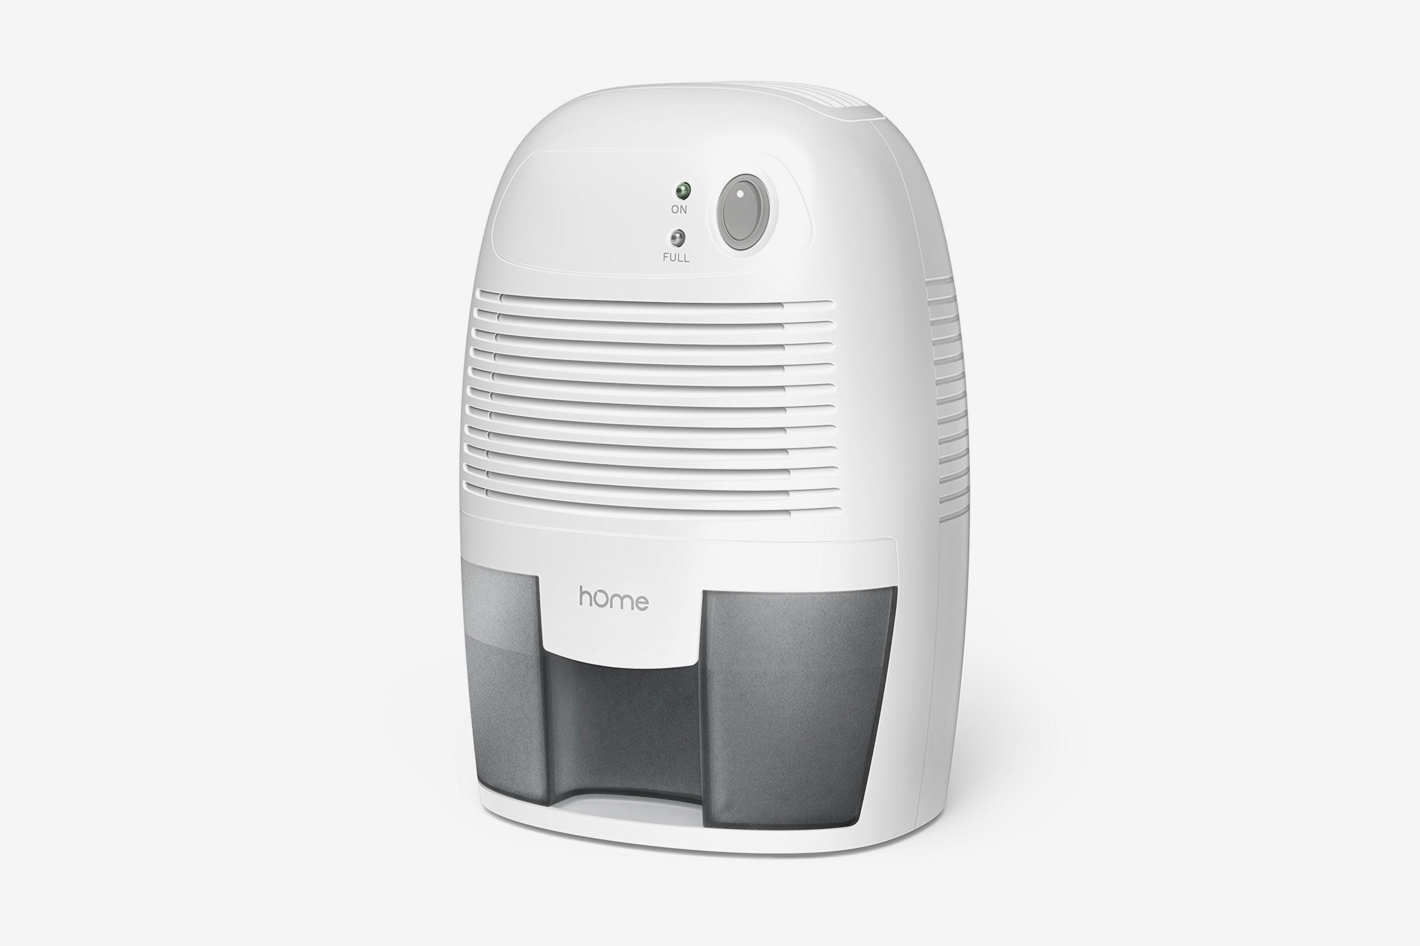 Charming HOmeLabs Small Dehumidifier